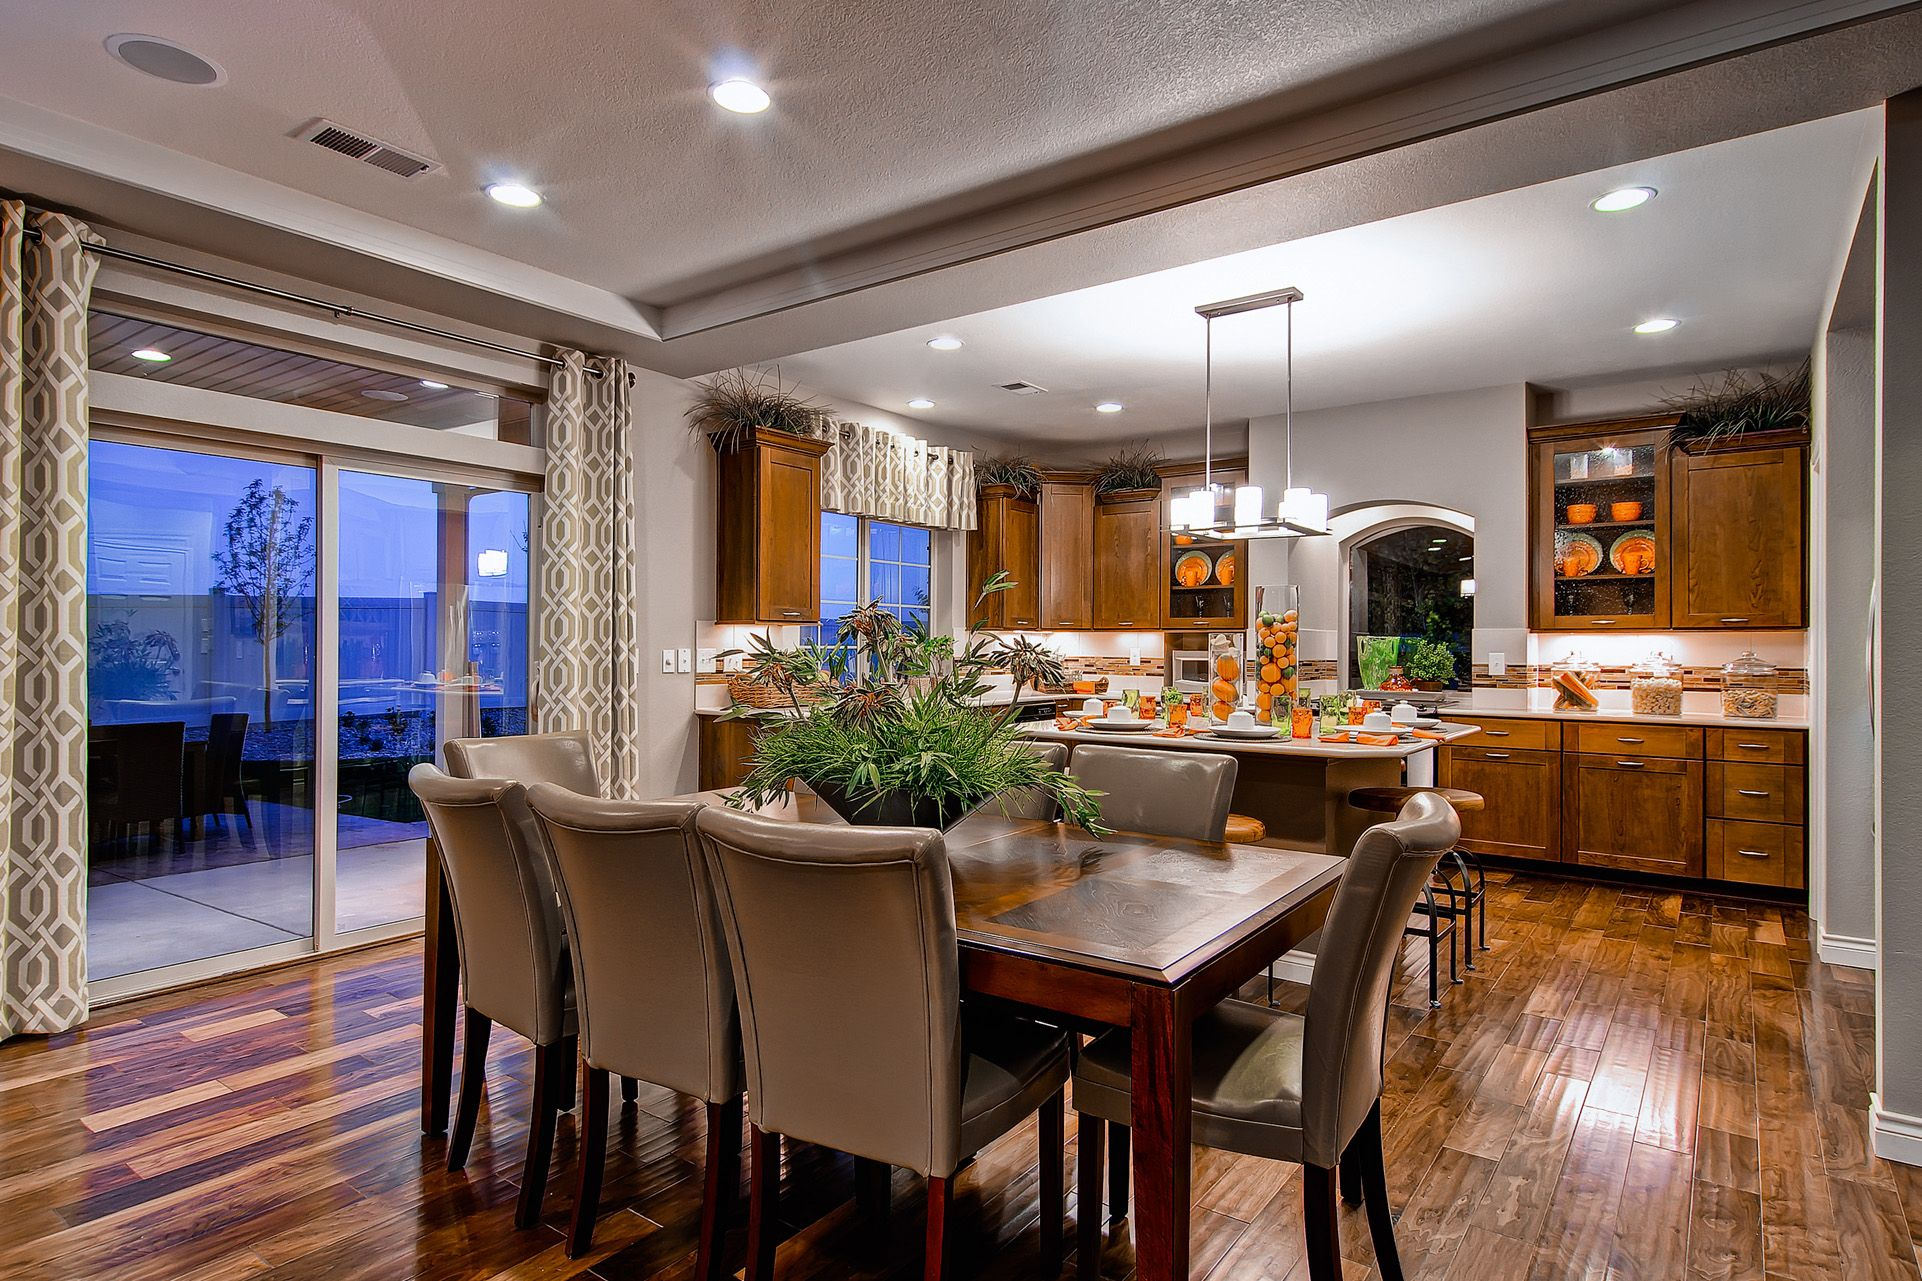 1000 images about dining rooms by oakwood homes on pinterest end of different types of and colorful dining rooms